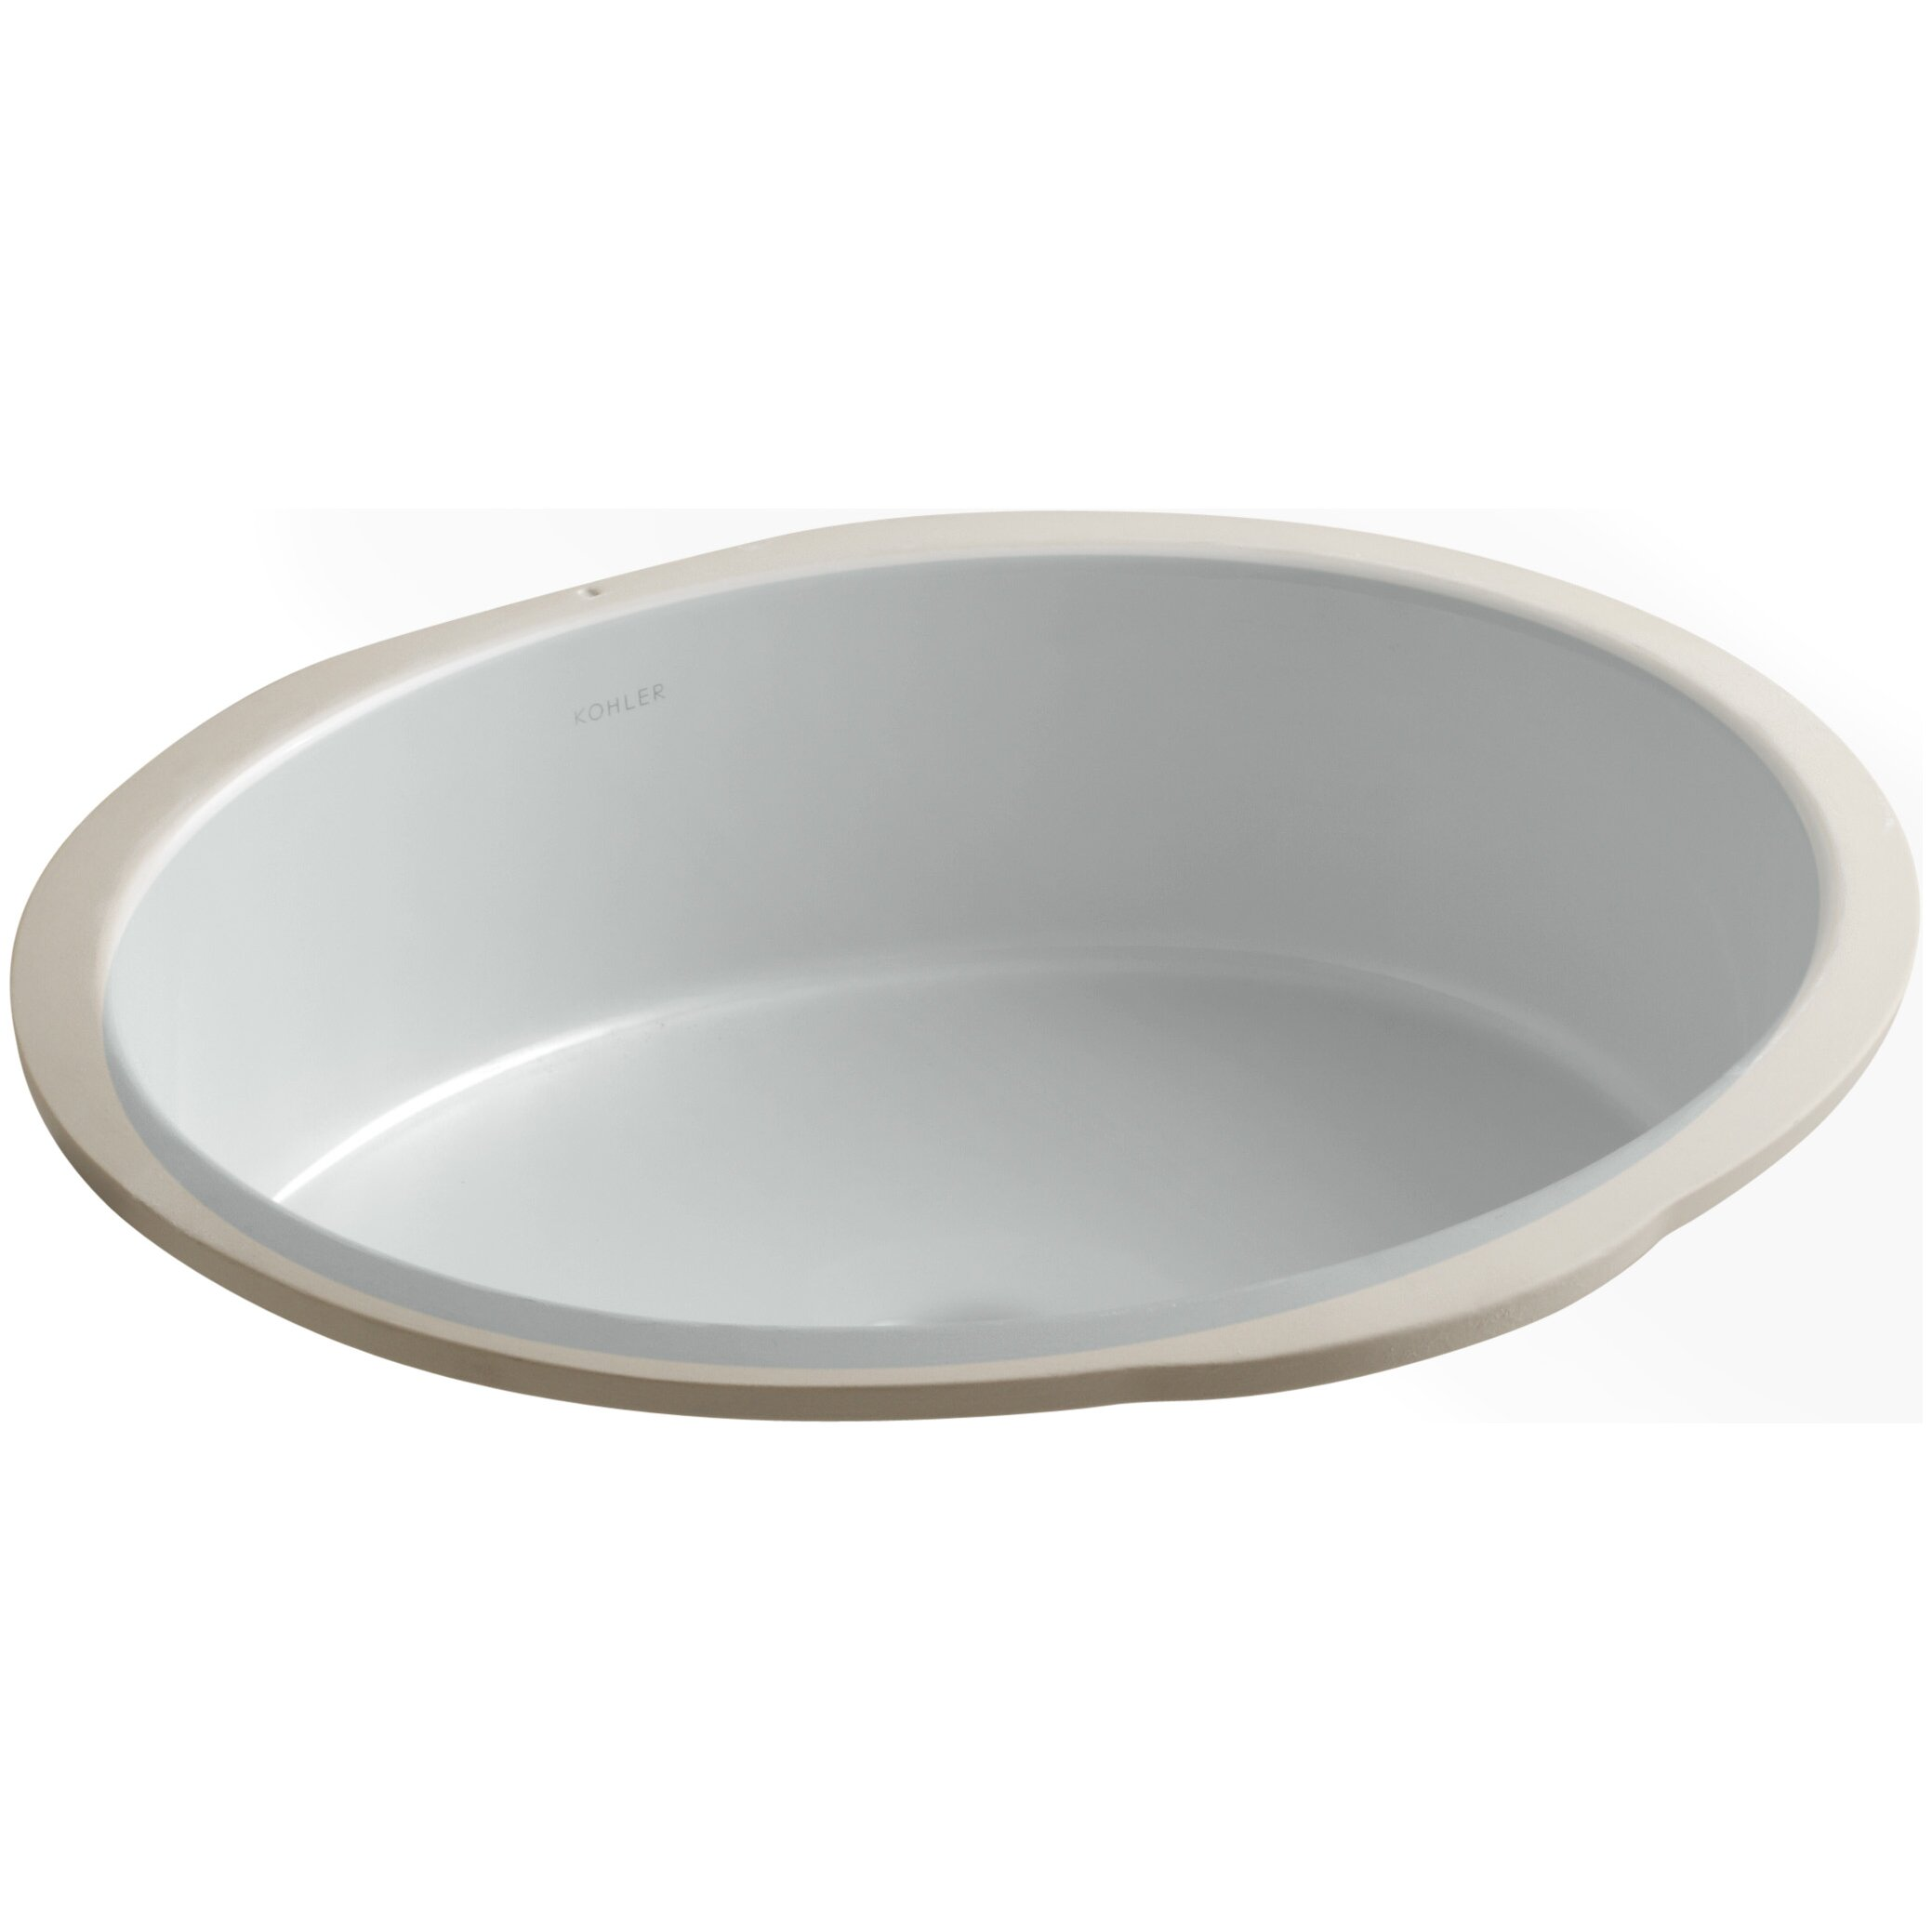 Kohler Undermount Bathroom Sinks : Kohler Verticyl Oval Undermount Bathroom Sink & Reviews Wayfair